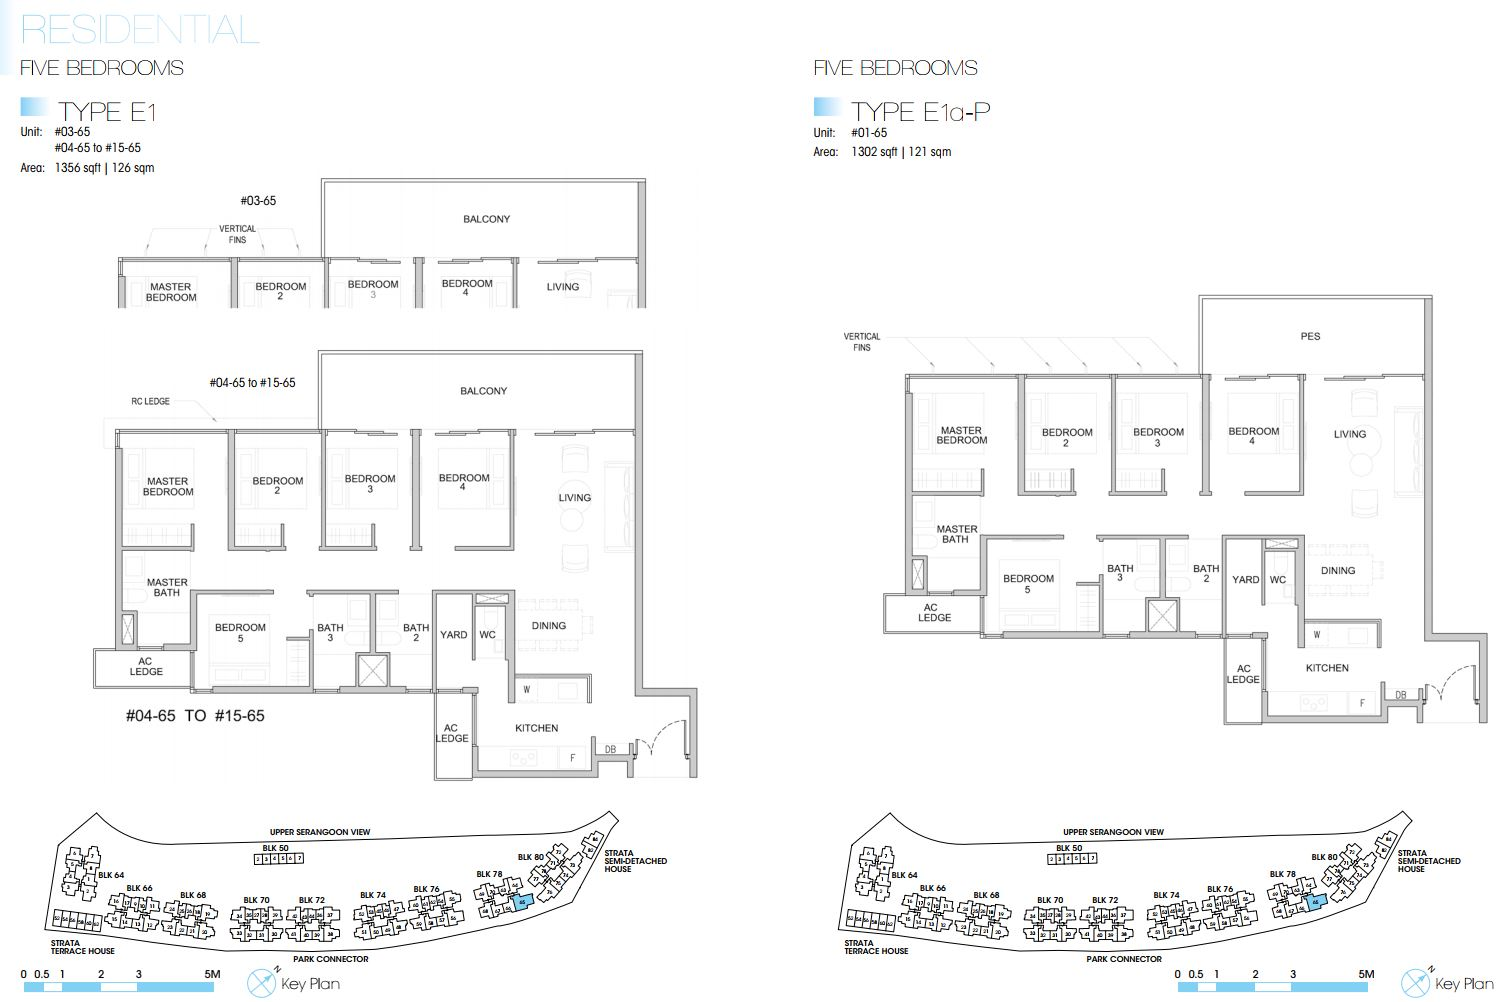 Kingsford Waterbay FloorPlan - 5 Bedroom Type E1